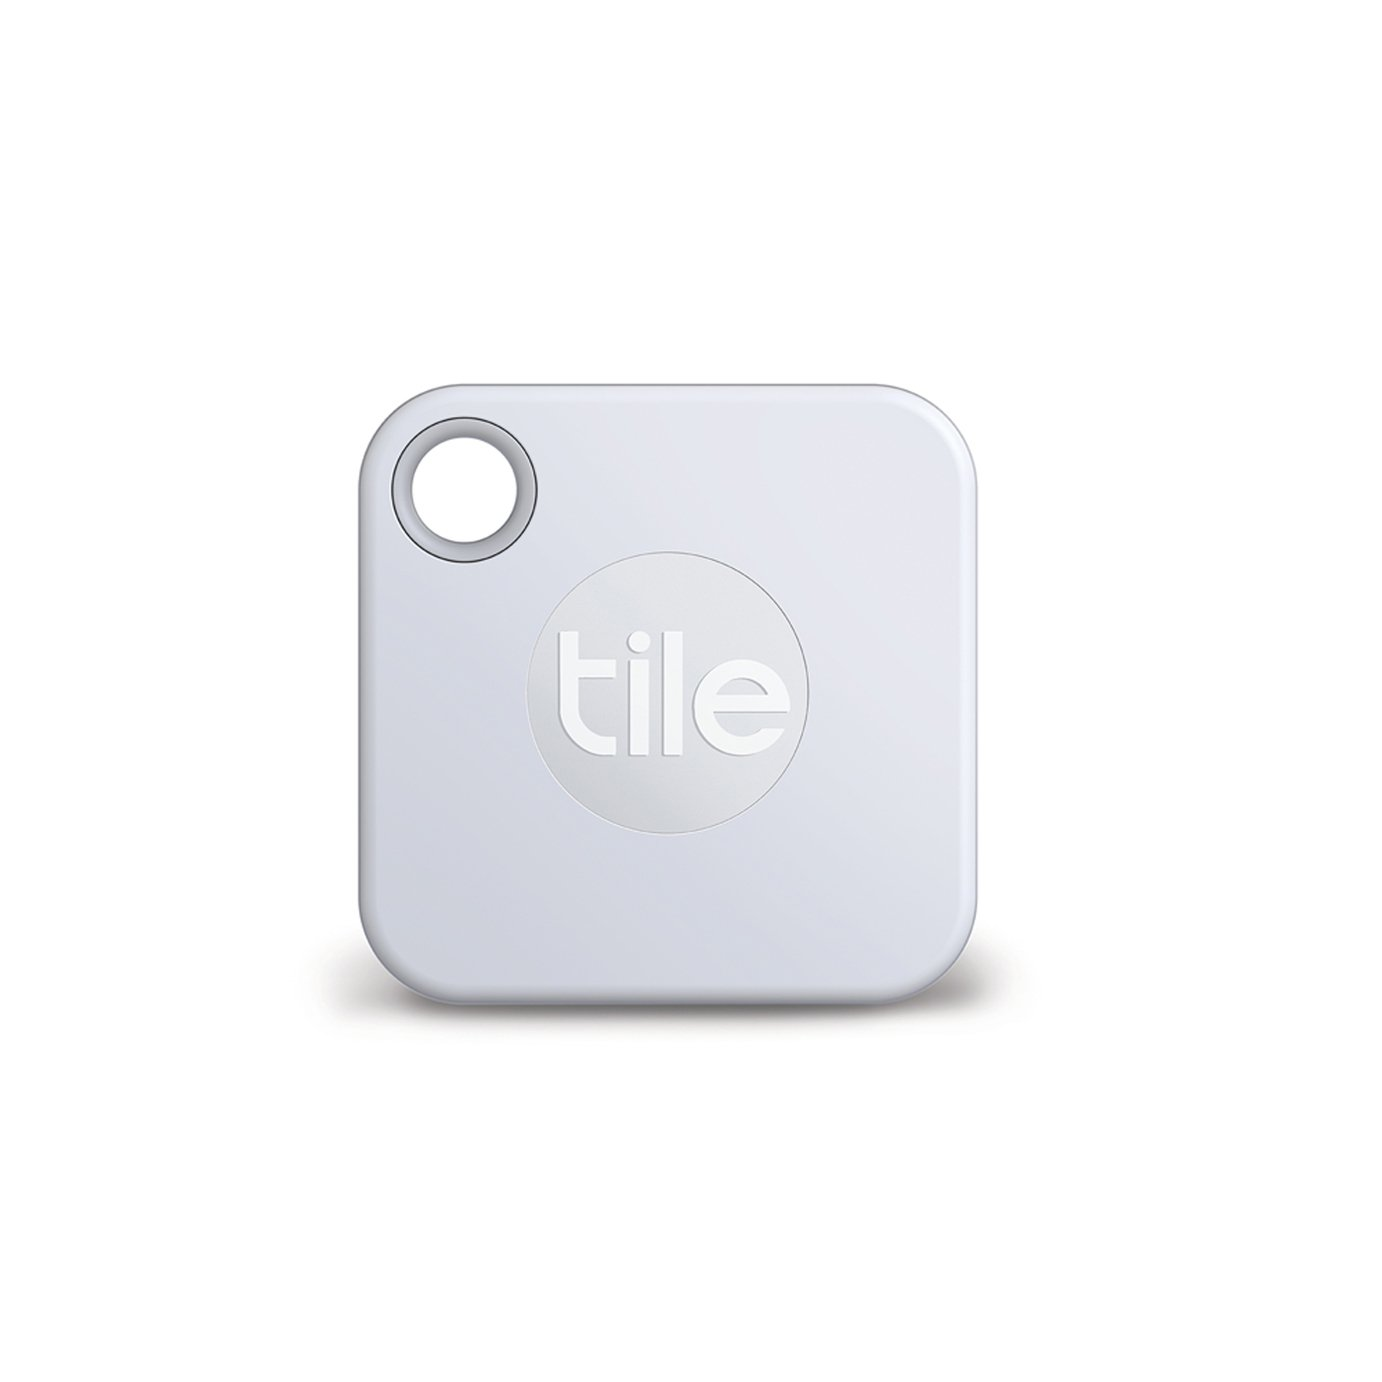 Tile Mate 2020 Phone and Key Item Finder